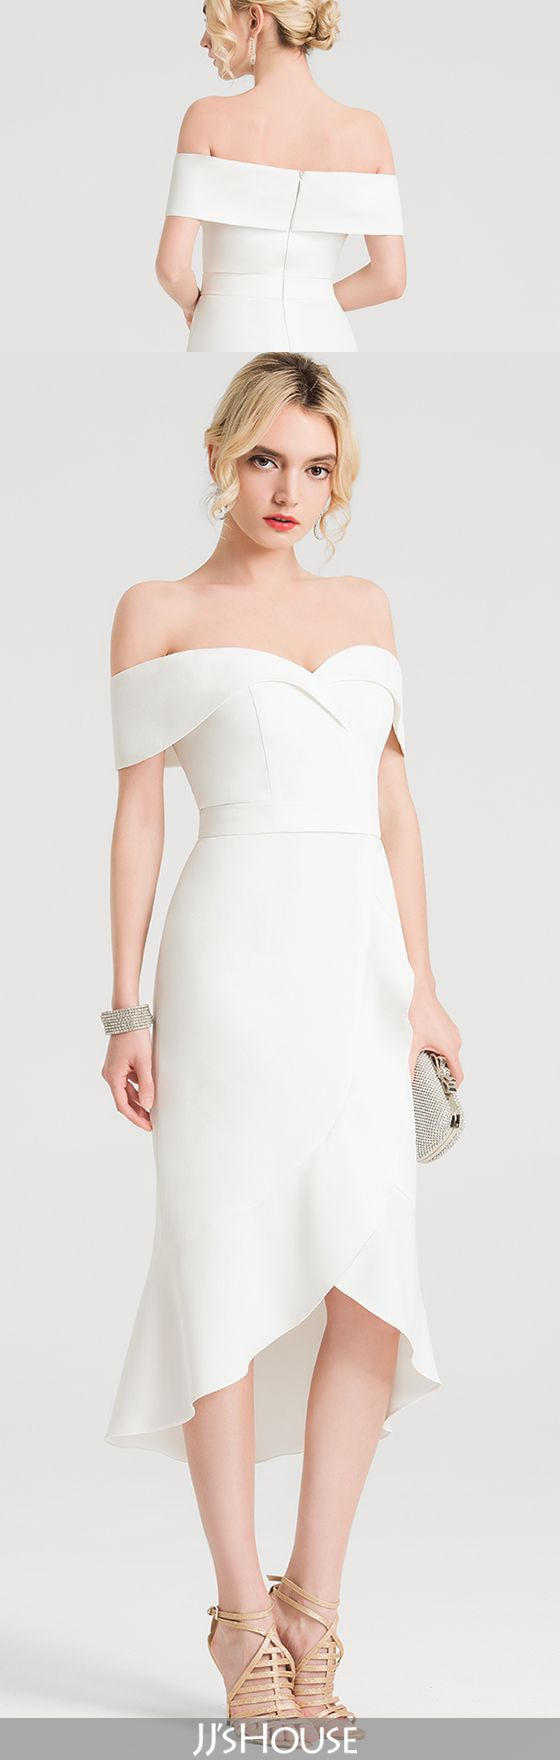 Stylish Look Cocktail Dresses That You Must Try Right Now